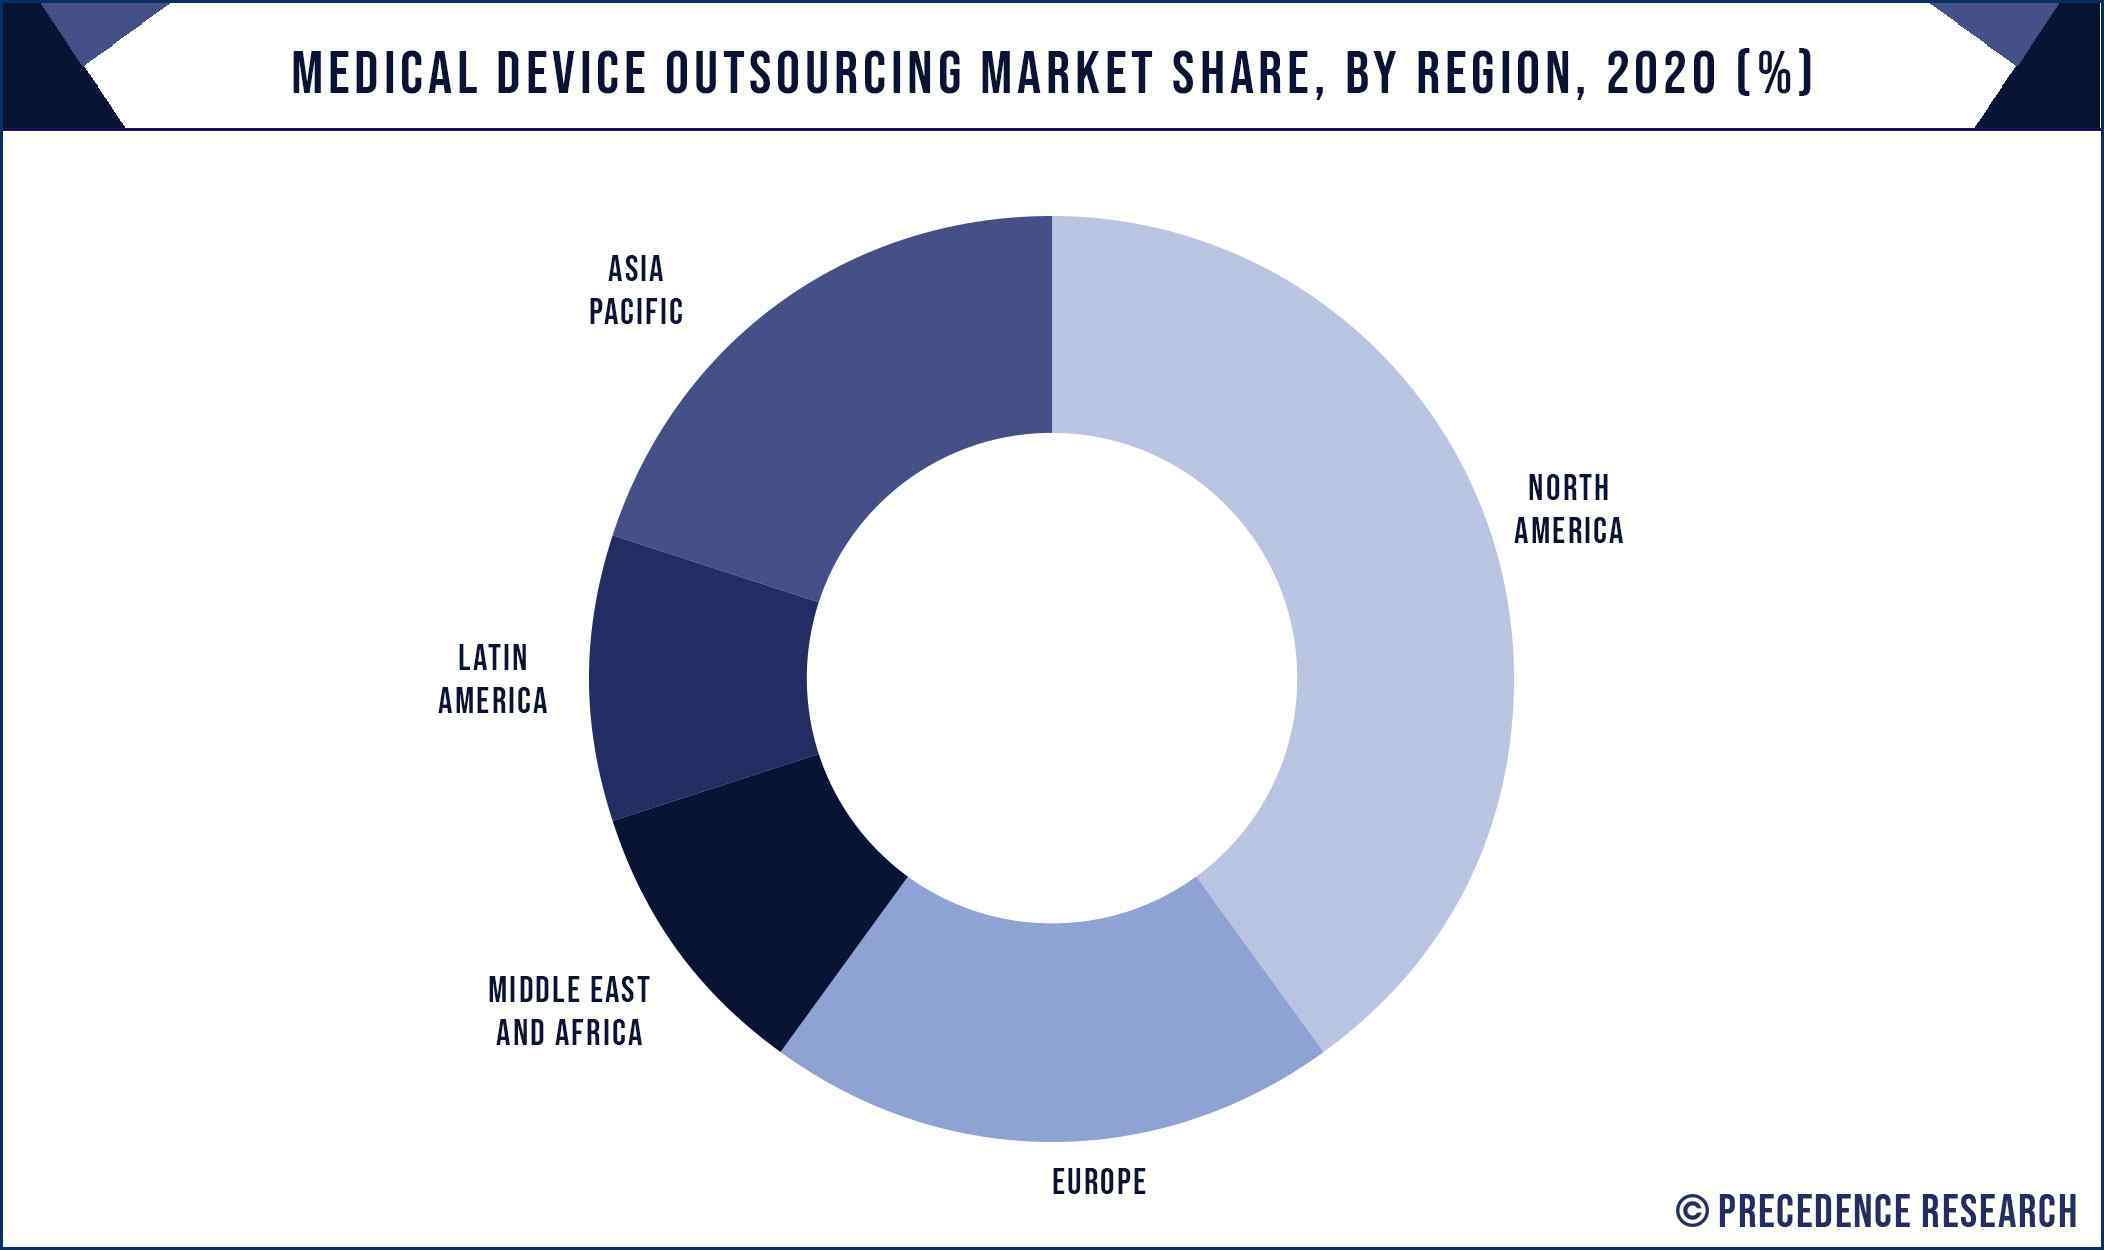 Medical Device Outsourcing Market Share, By Region, 2020 (%)